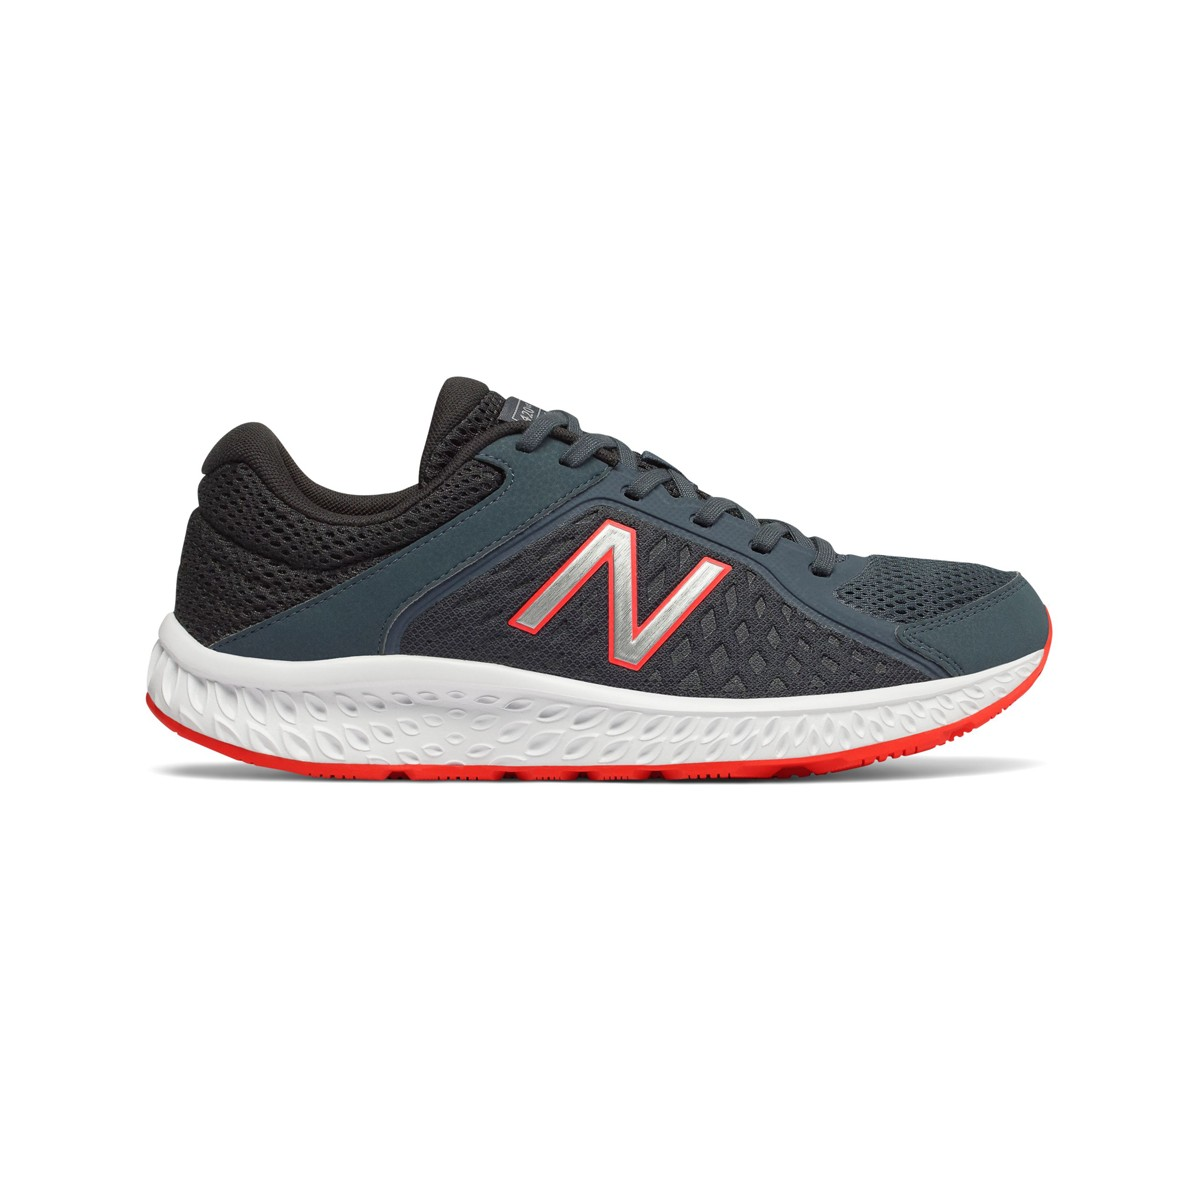 NEW BALANCE Running Shoe Men Unisex M420 CP4, Athletics Schedule And Running, Navy